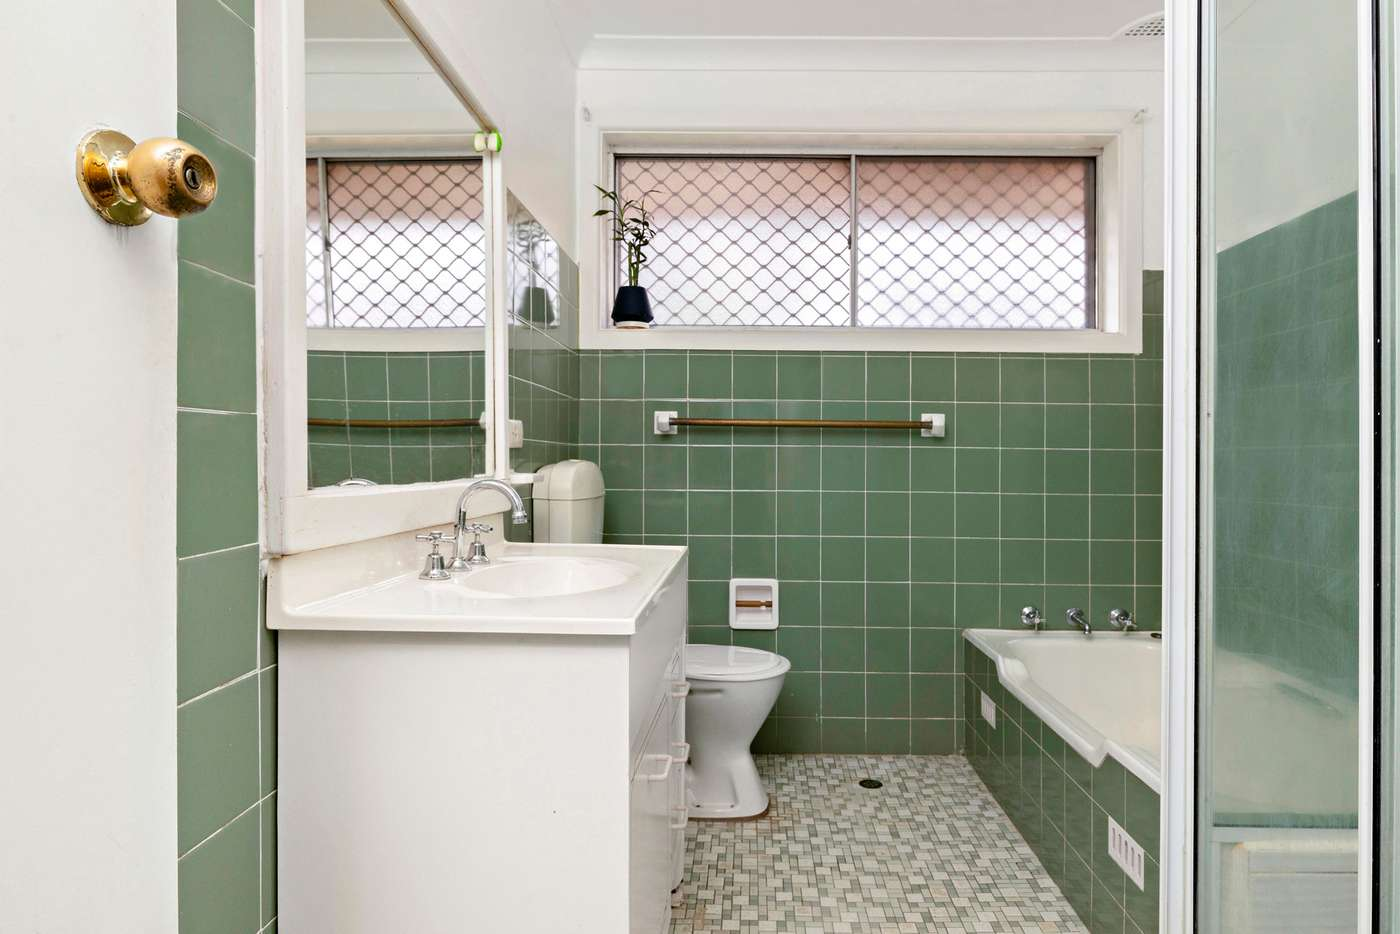 Fifth view of Homely house listing, 2 McAndrew Crescent, Mangerton NSW 2500